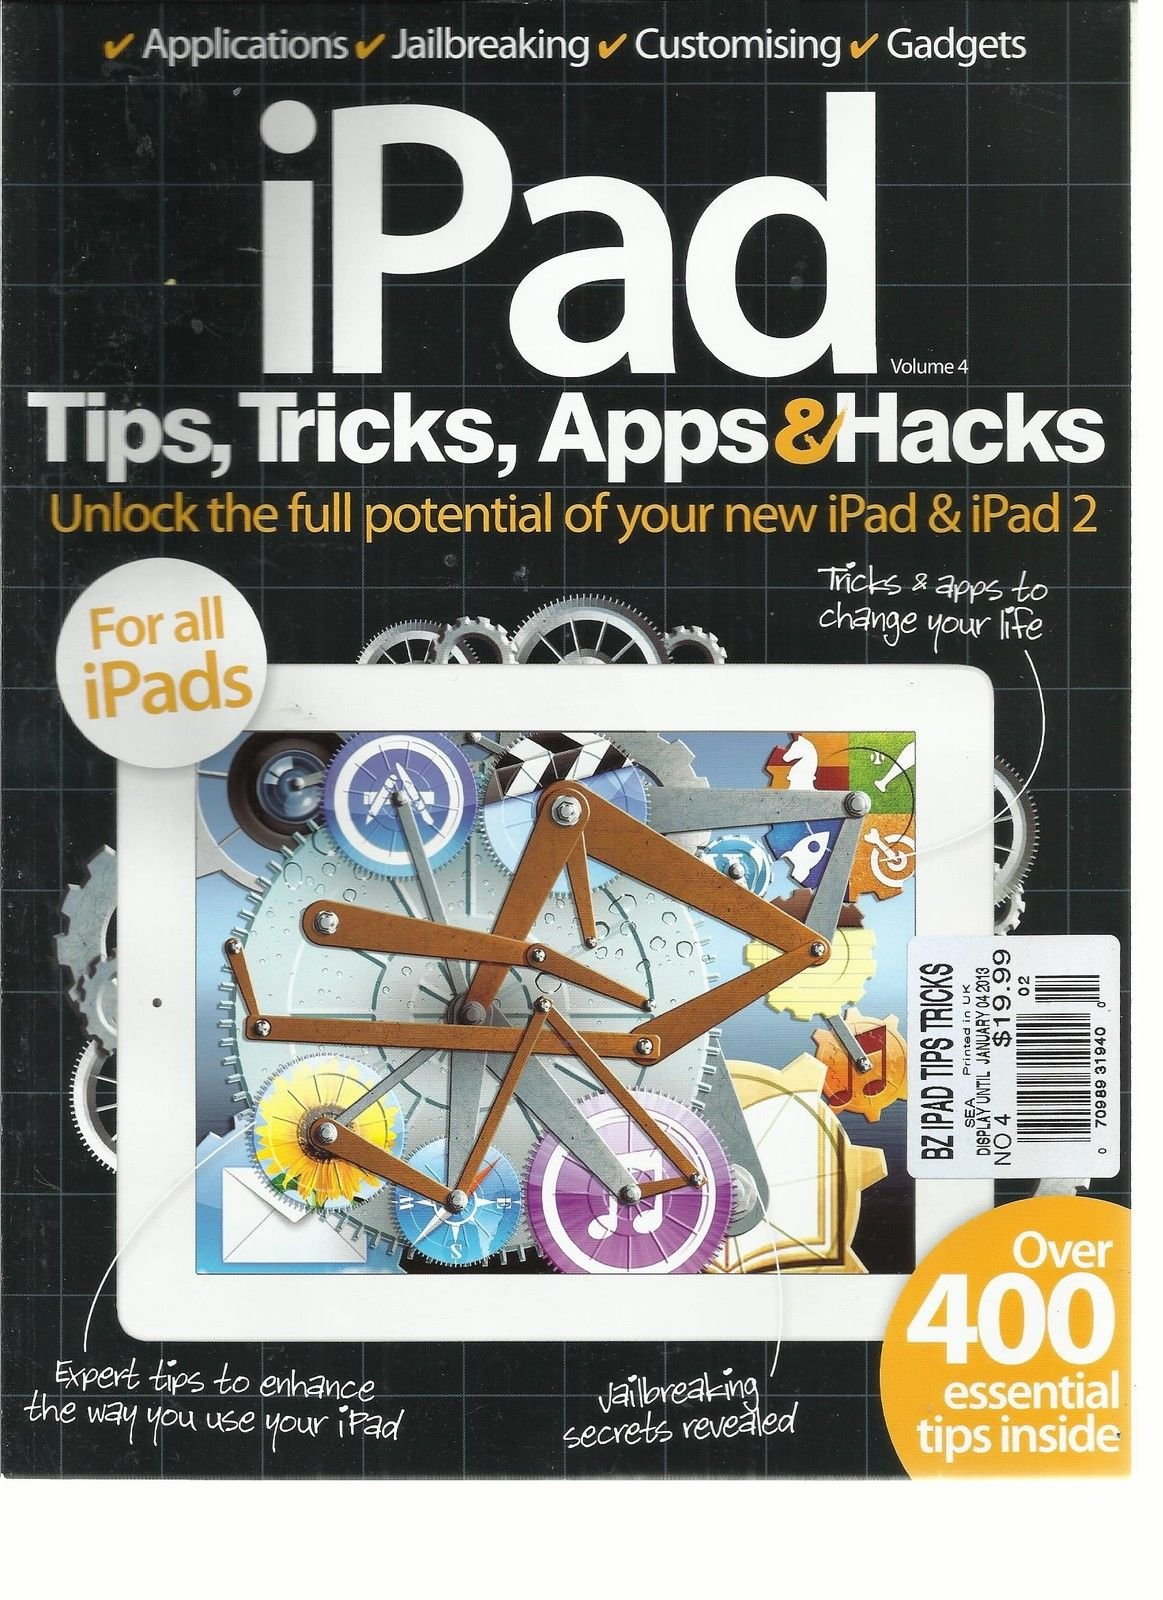 iPAD TIPS, TRICKS APPS & HACKS, VOL.4 (UNLOCKING THE FULL POTENTIAL OF YOUR NEW